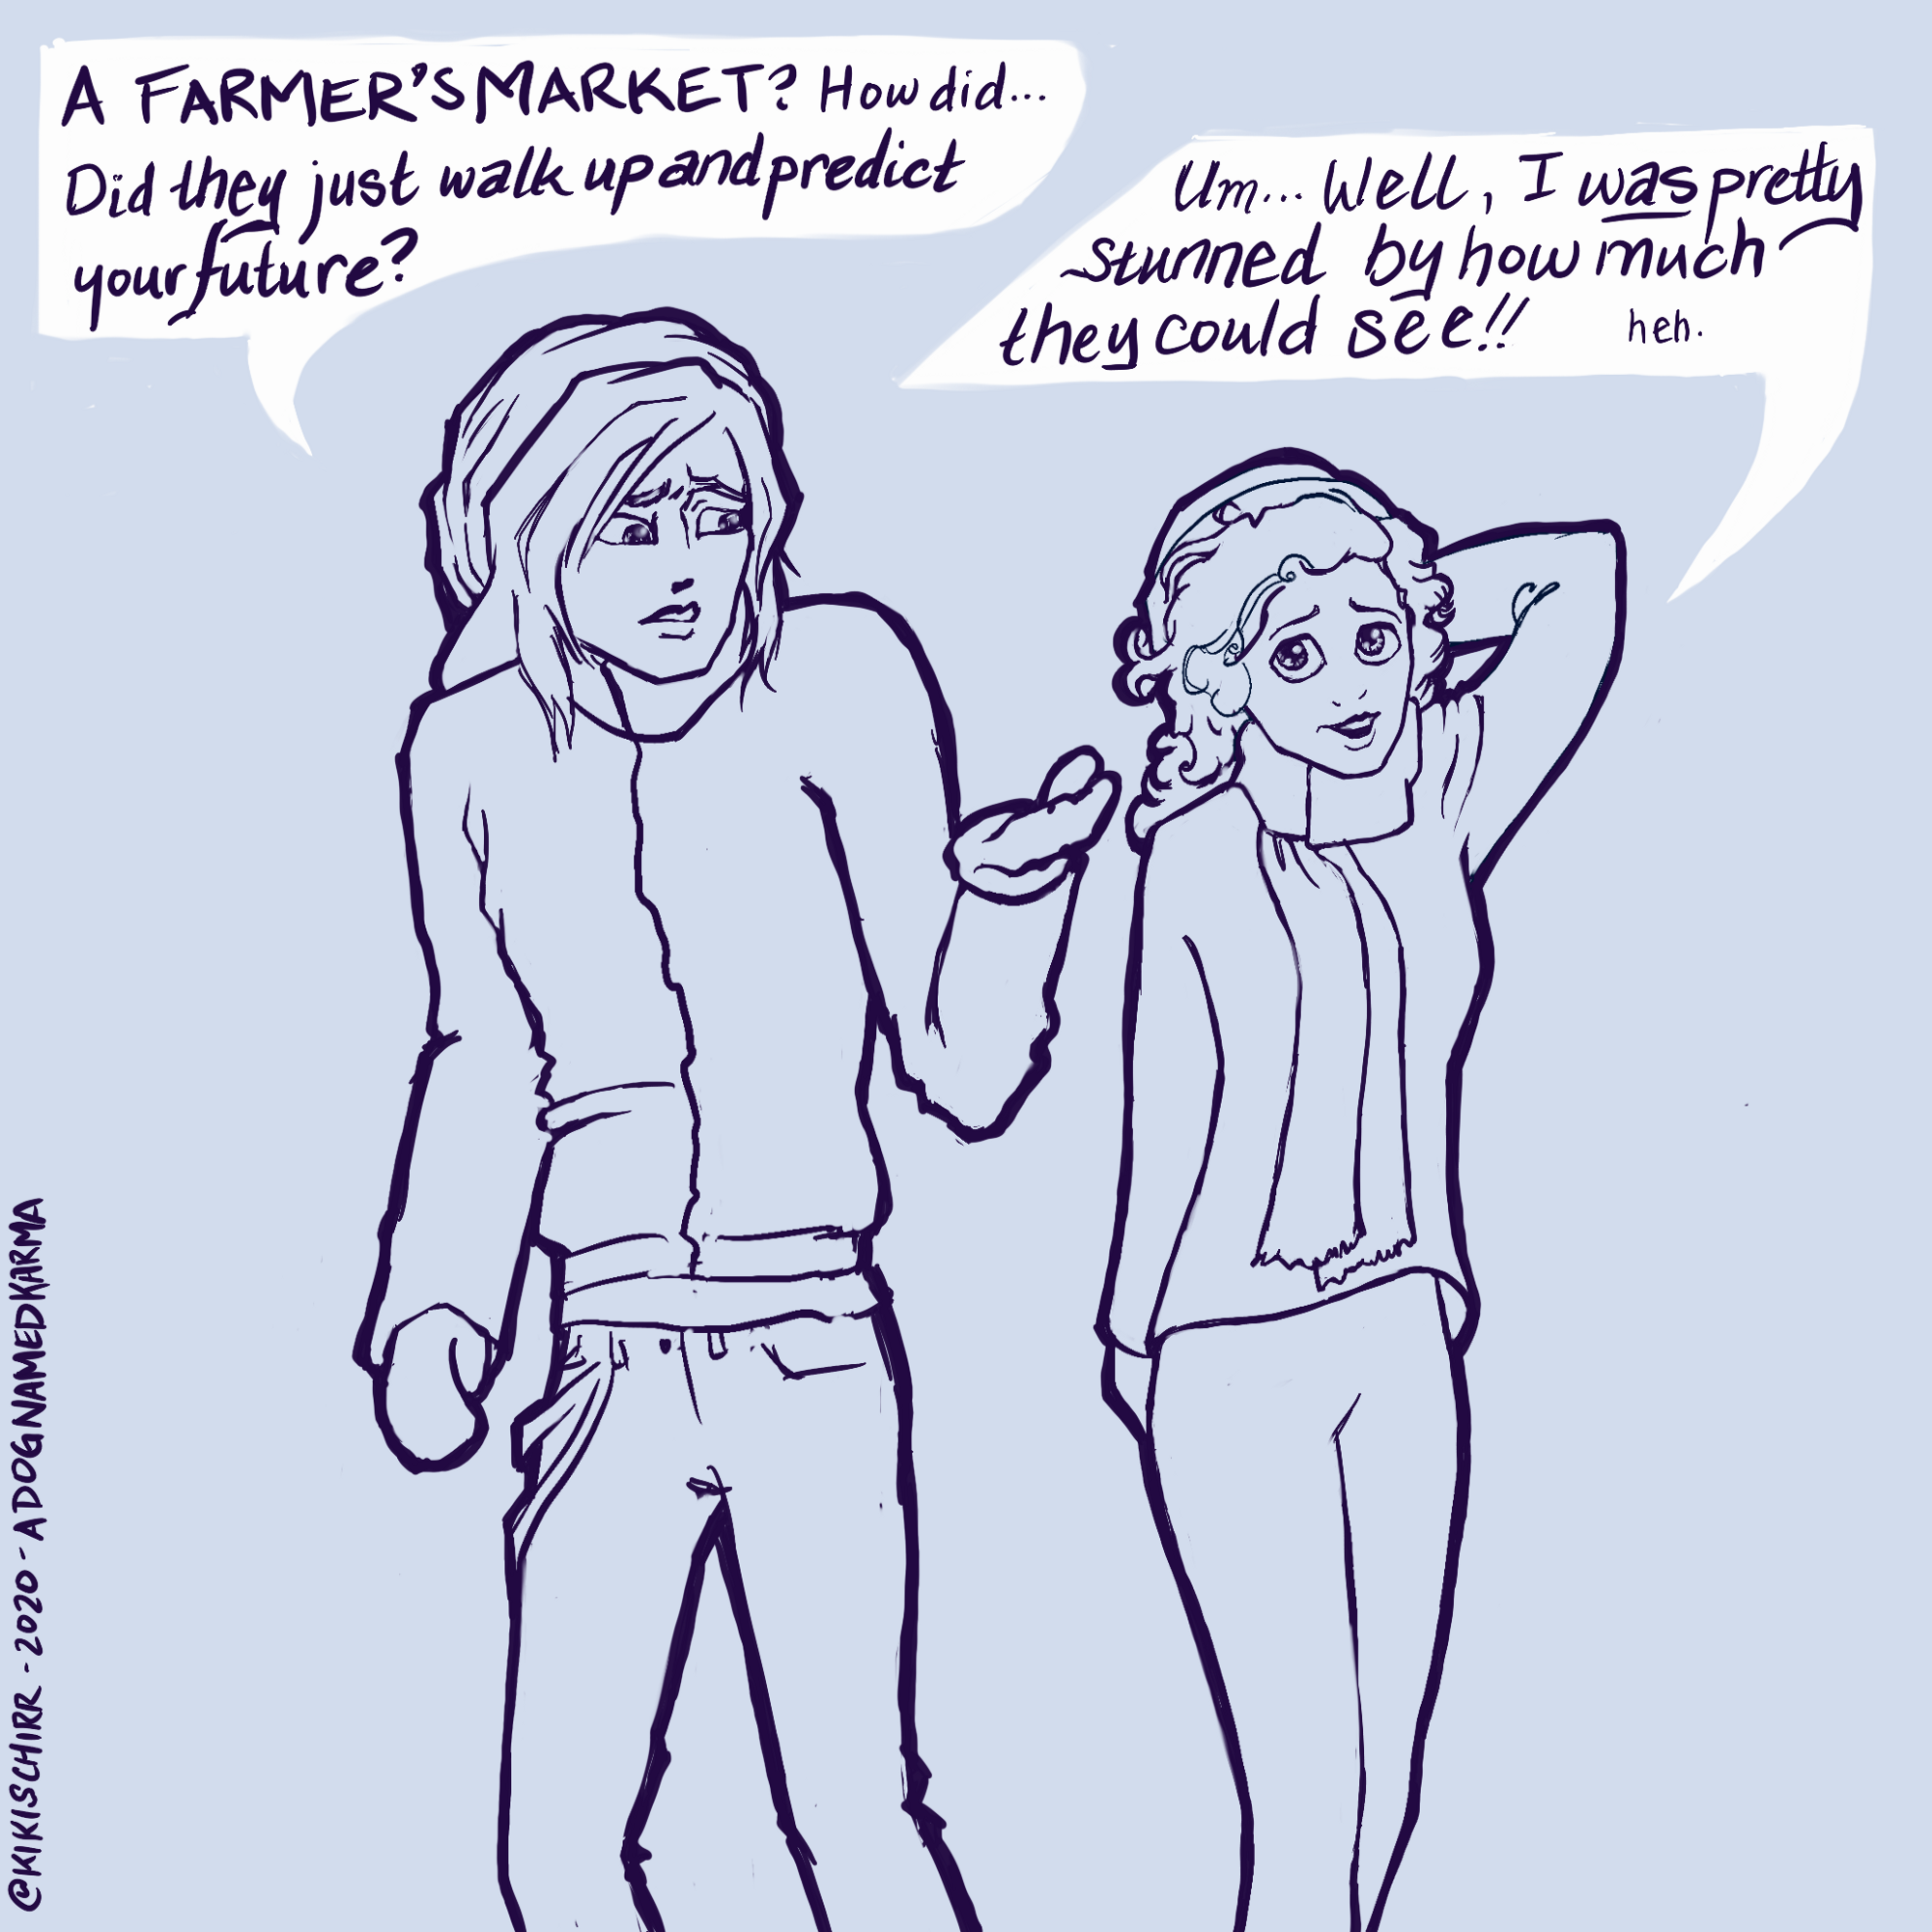 Talako tries to wrap his head around meeting a psychic at a Farmer's Market, and Frieda made a pun about how much they saw